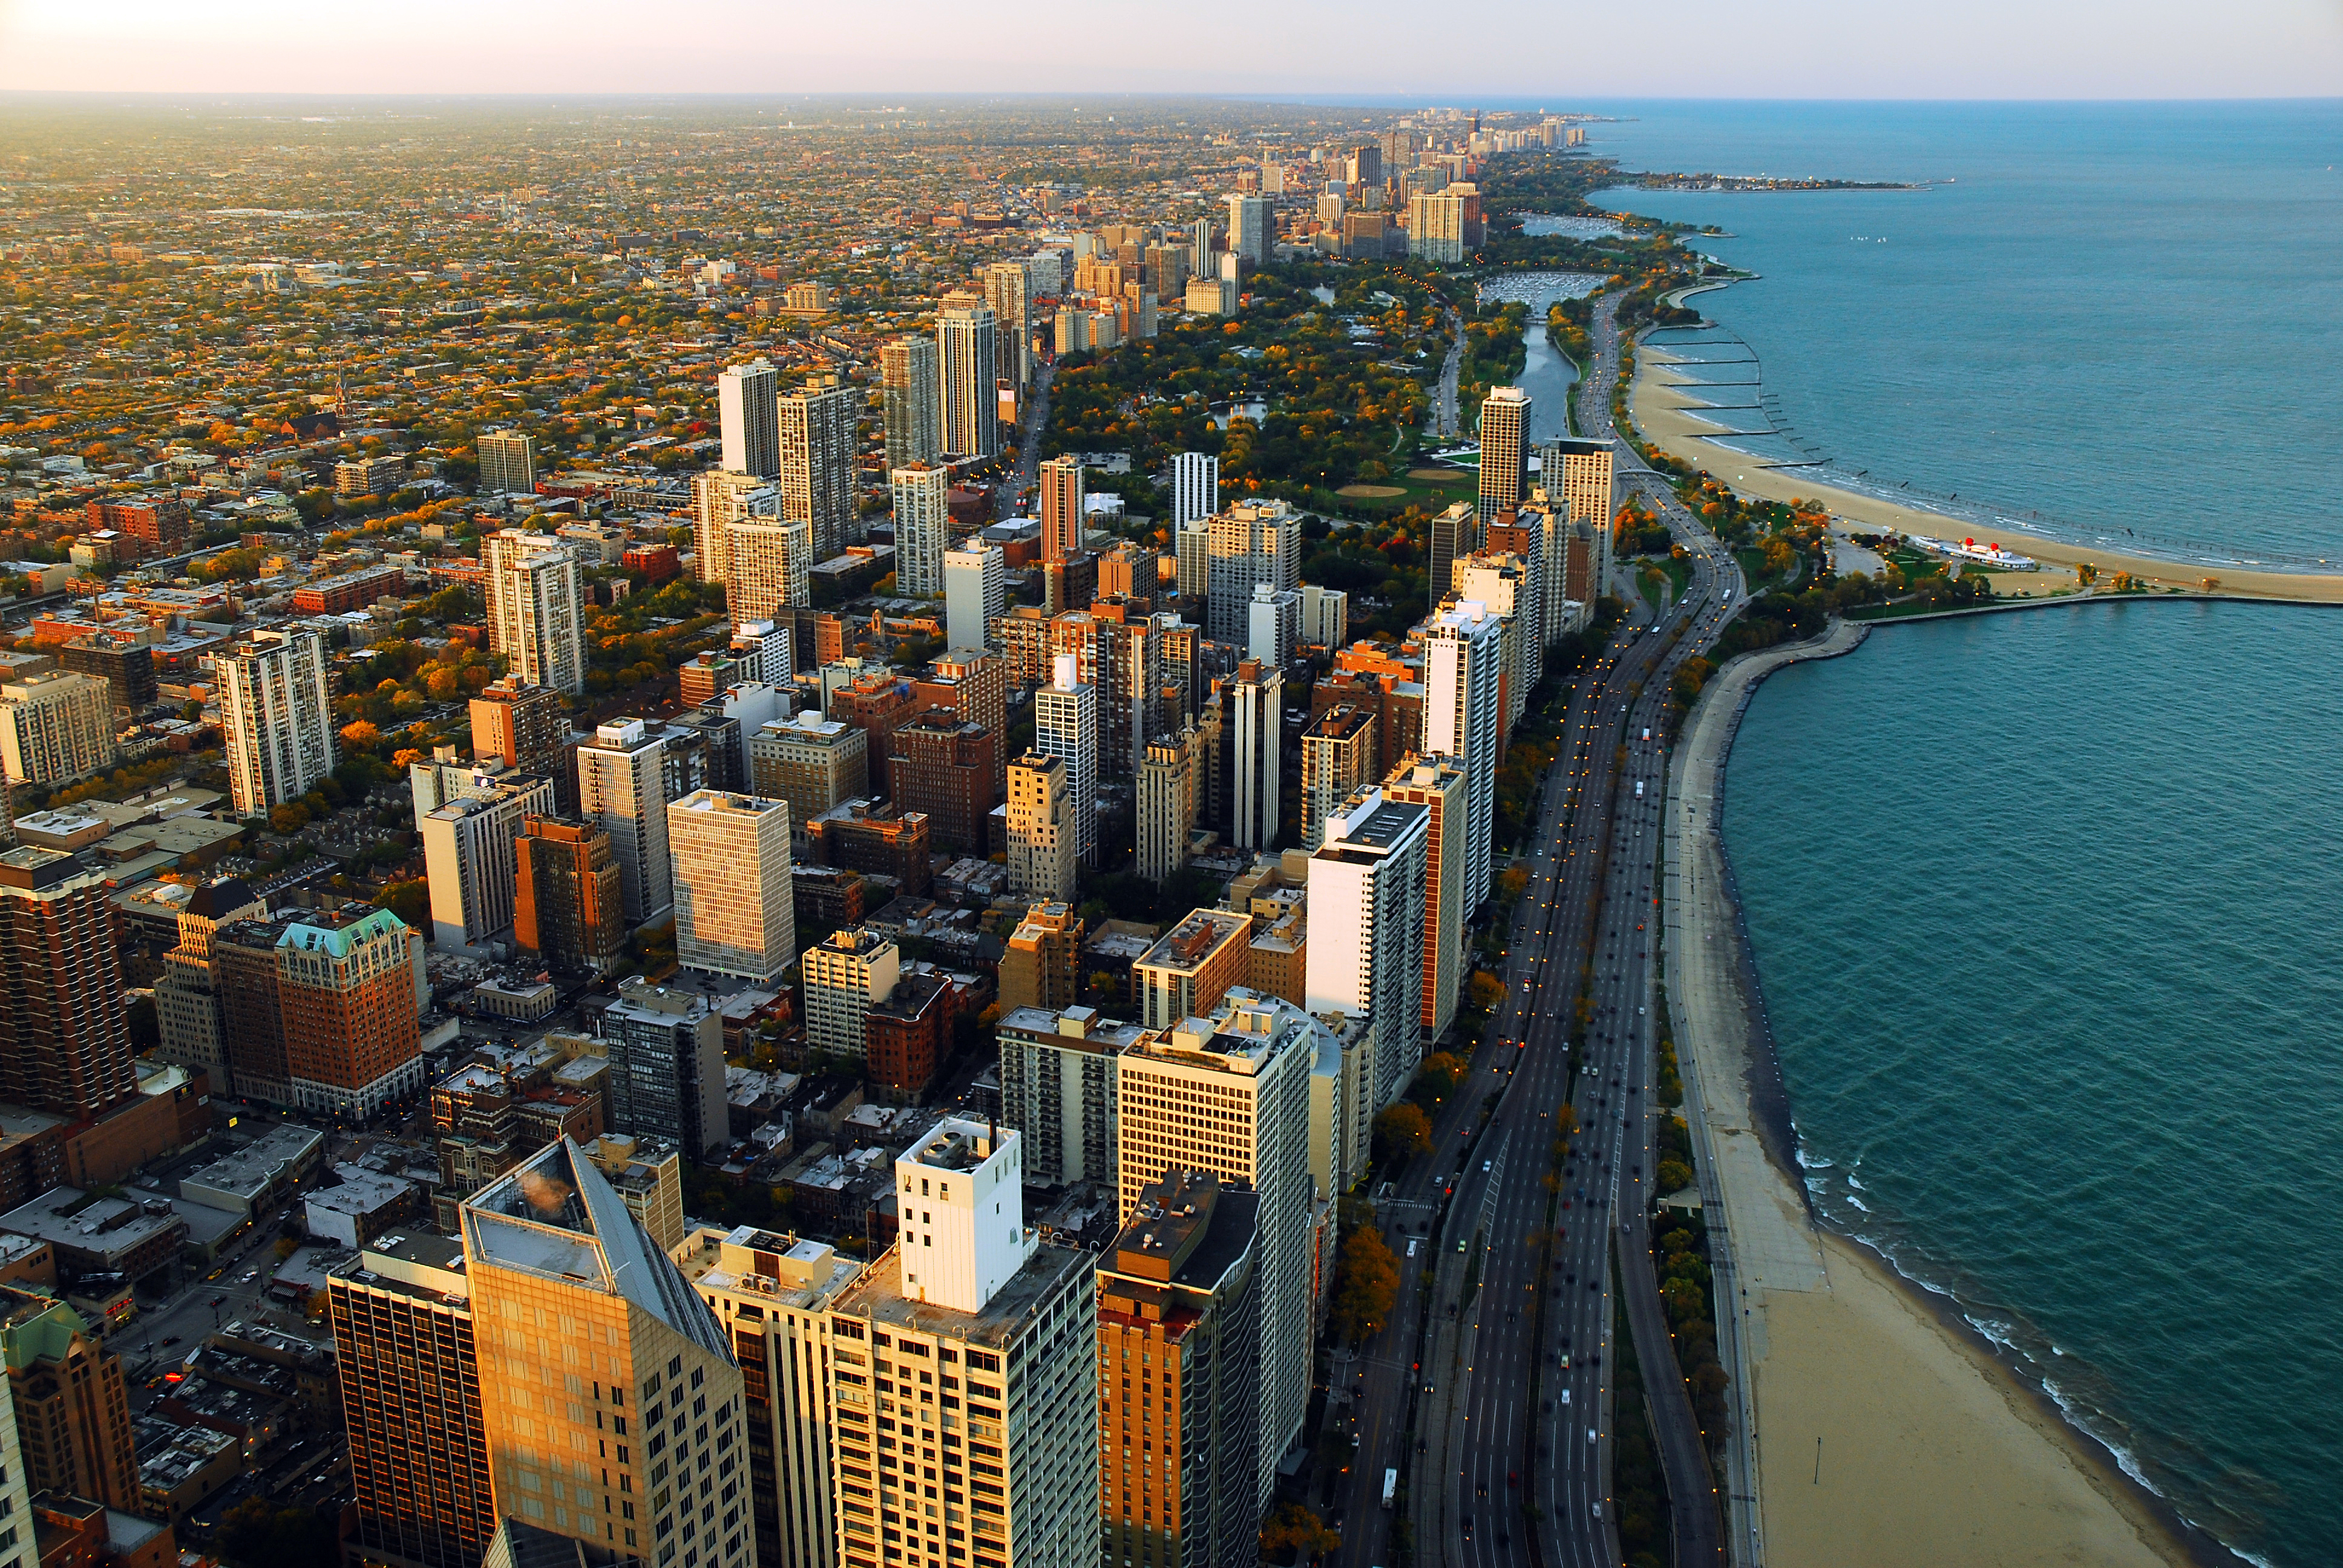 An aerial shot of Chicago buildings and the lake shore.